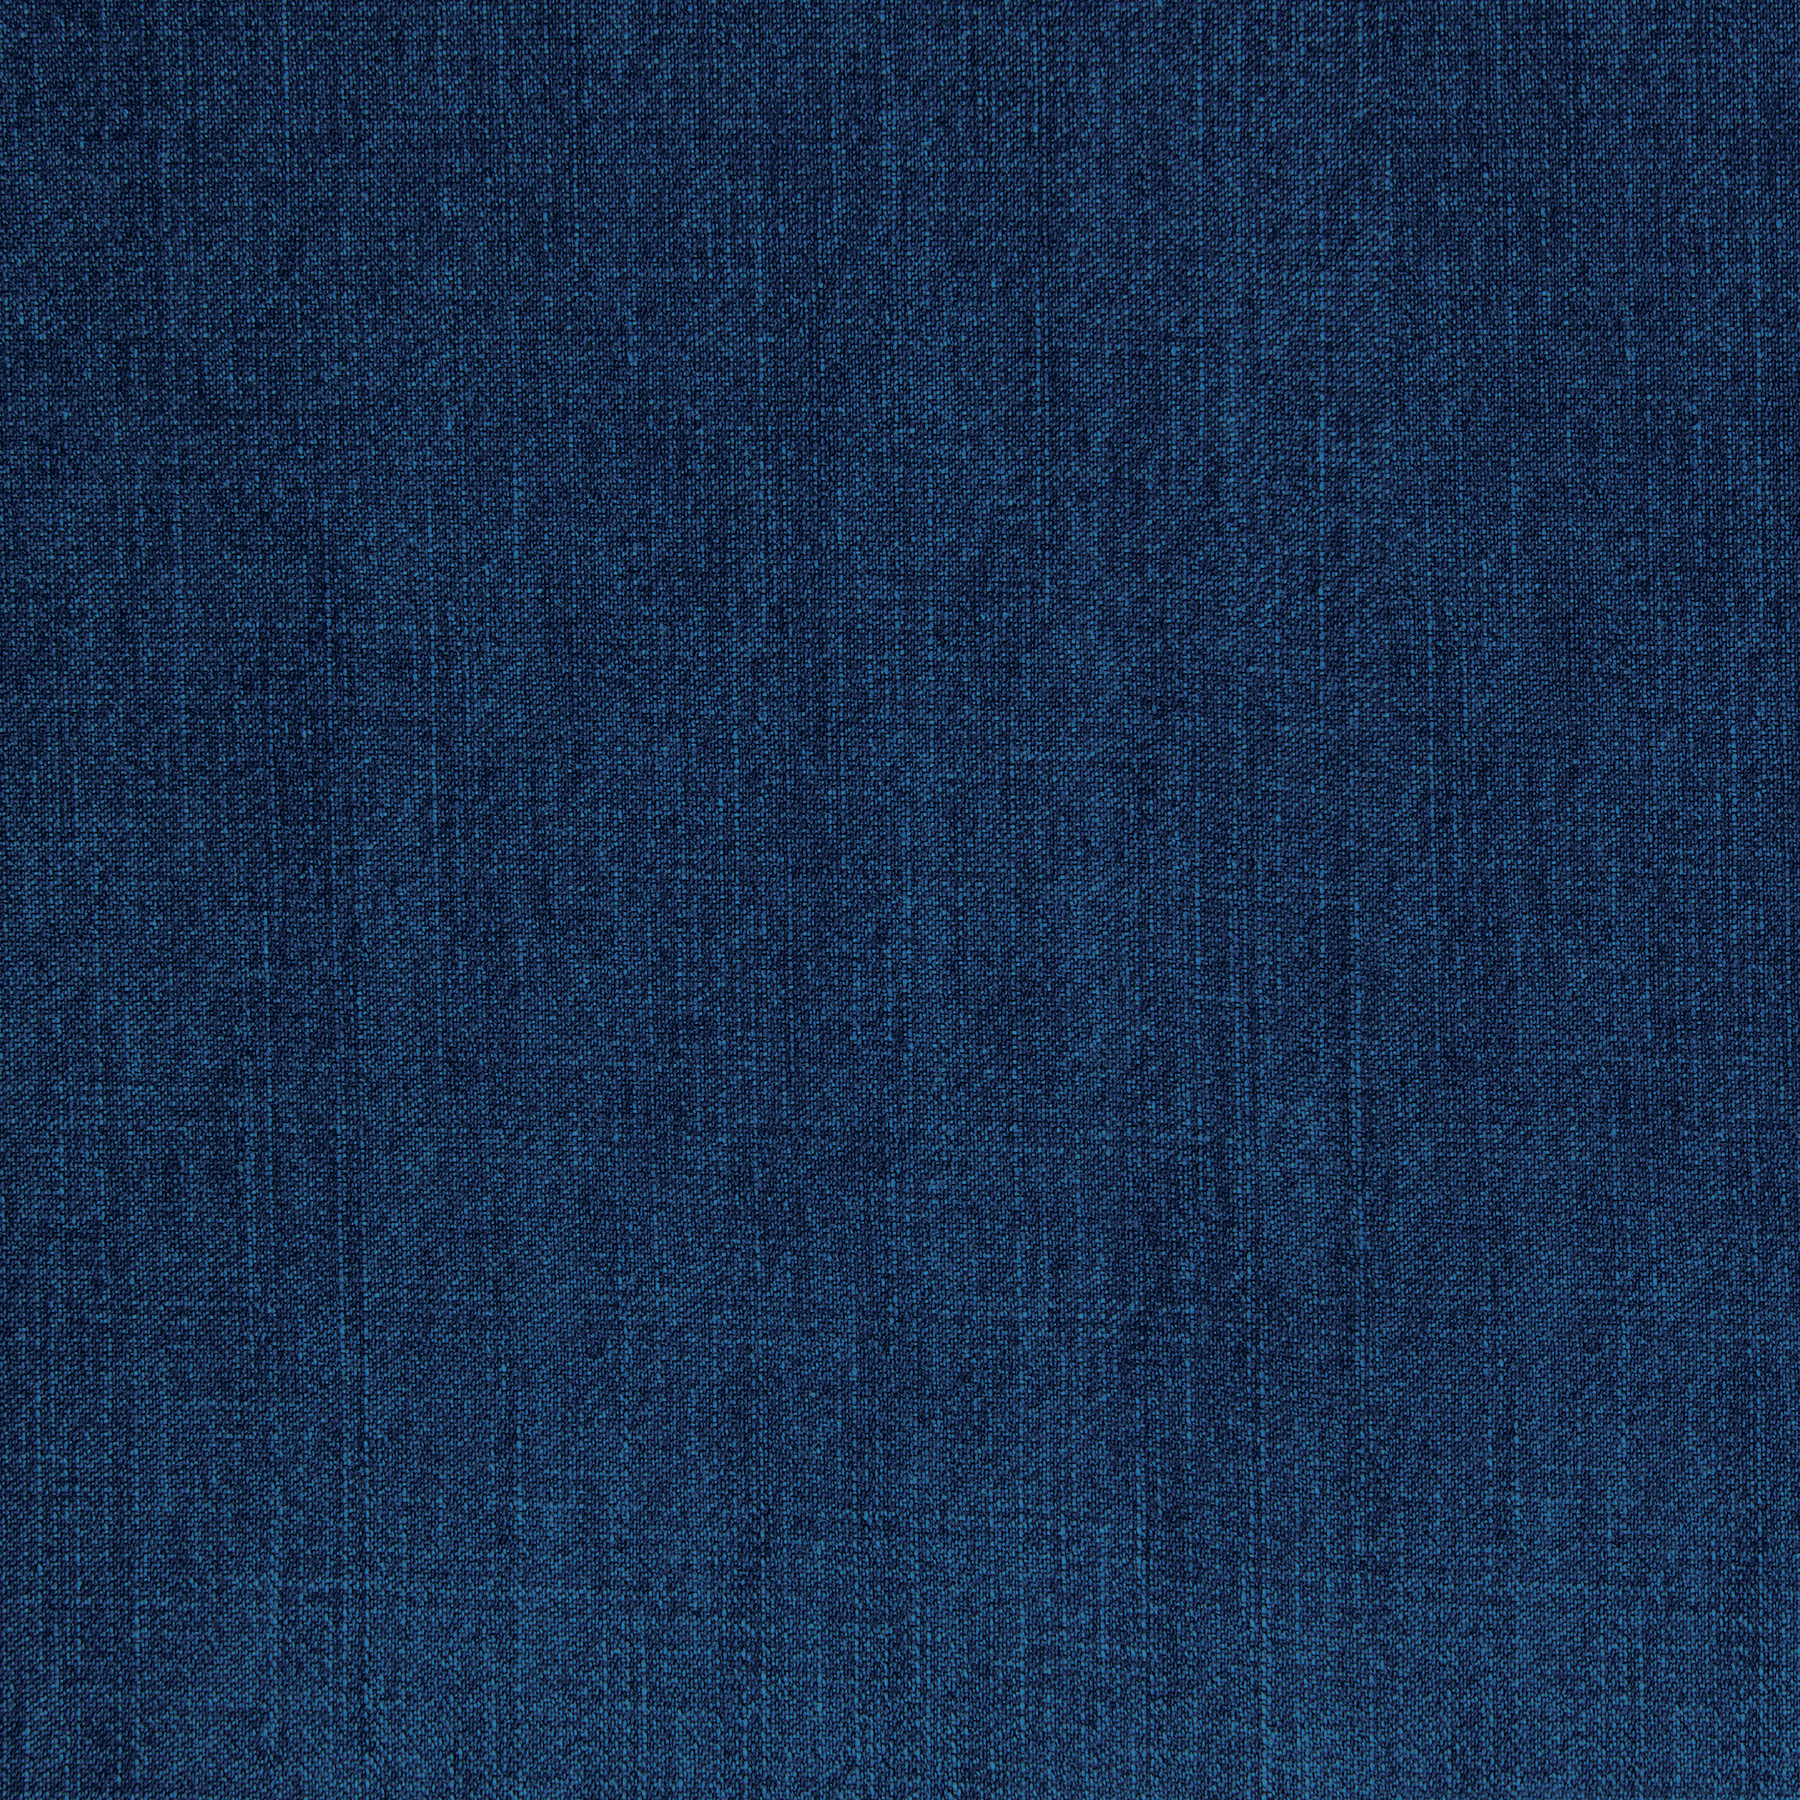 Shop For The Blue Denim Paper By Recollections At Michaels